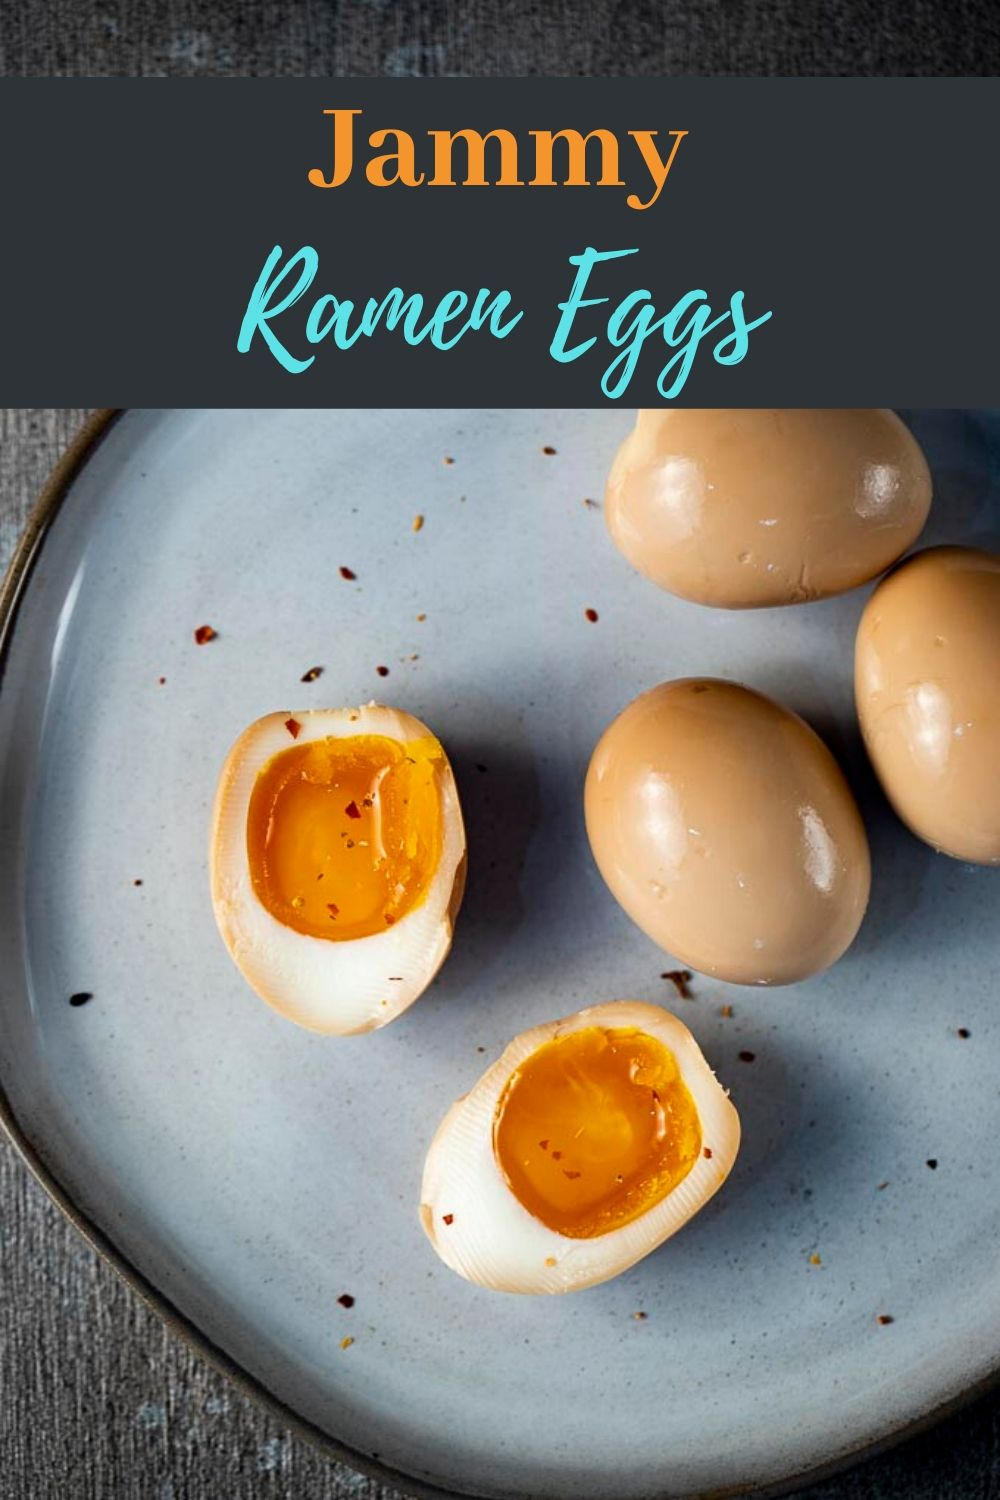 Slight salty, sweet and packed with umami goodness, these jammy, soft boiled Ramen Eggs are what life is all about. They are super easy to make and perfect in ramen, as a snack or any way you like them!